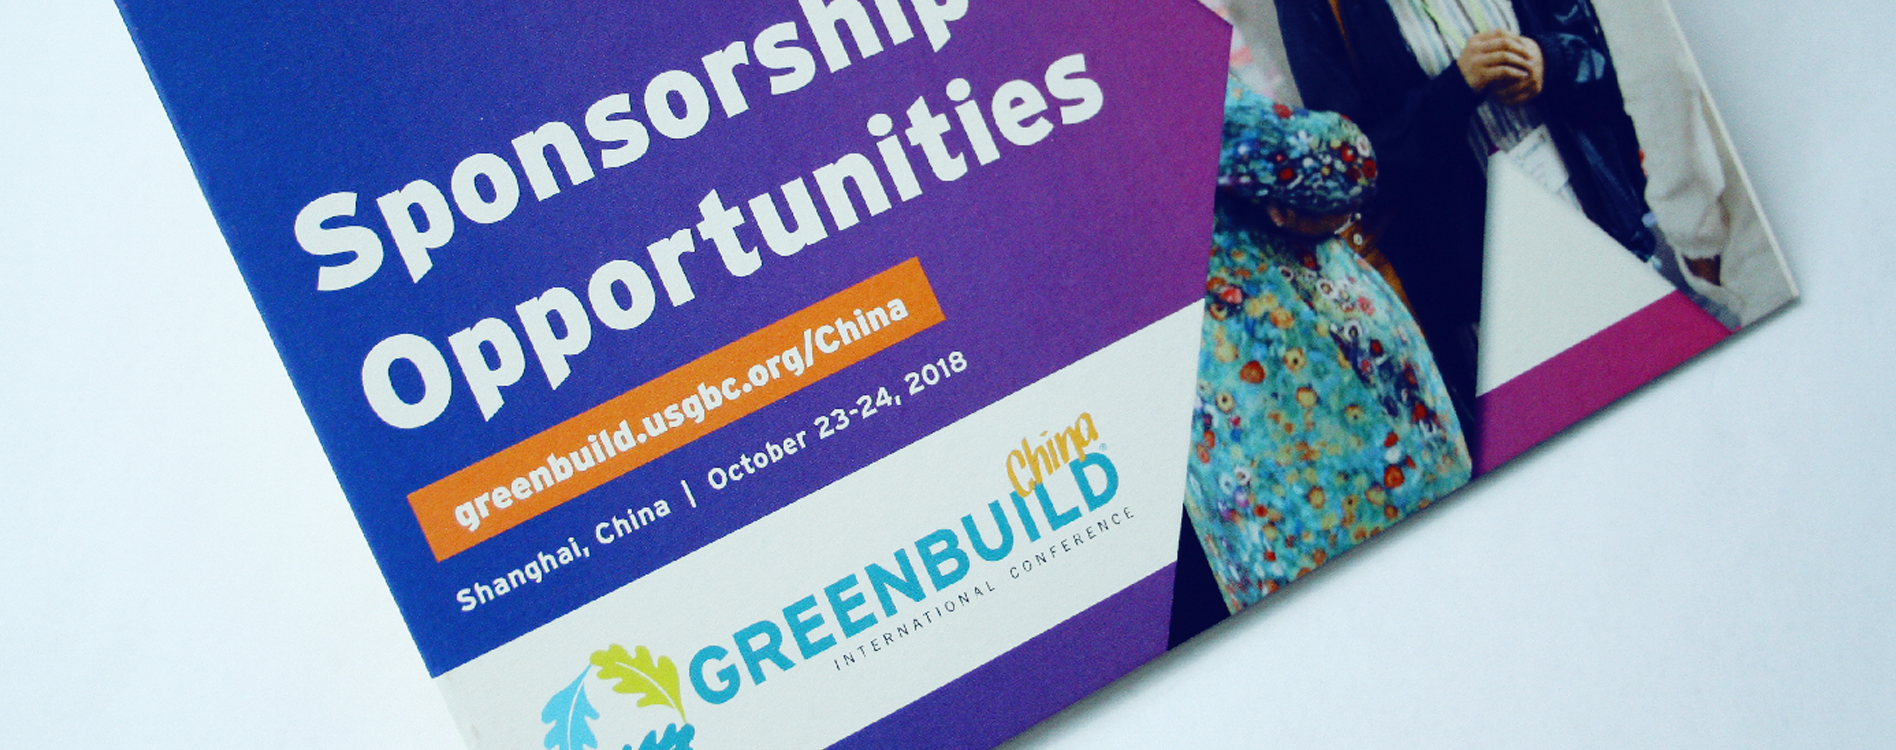 Design case study: The Greenbuild international rebrand